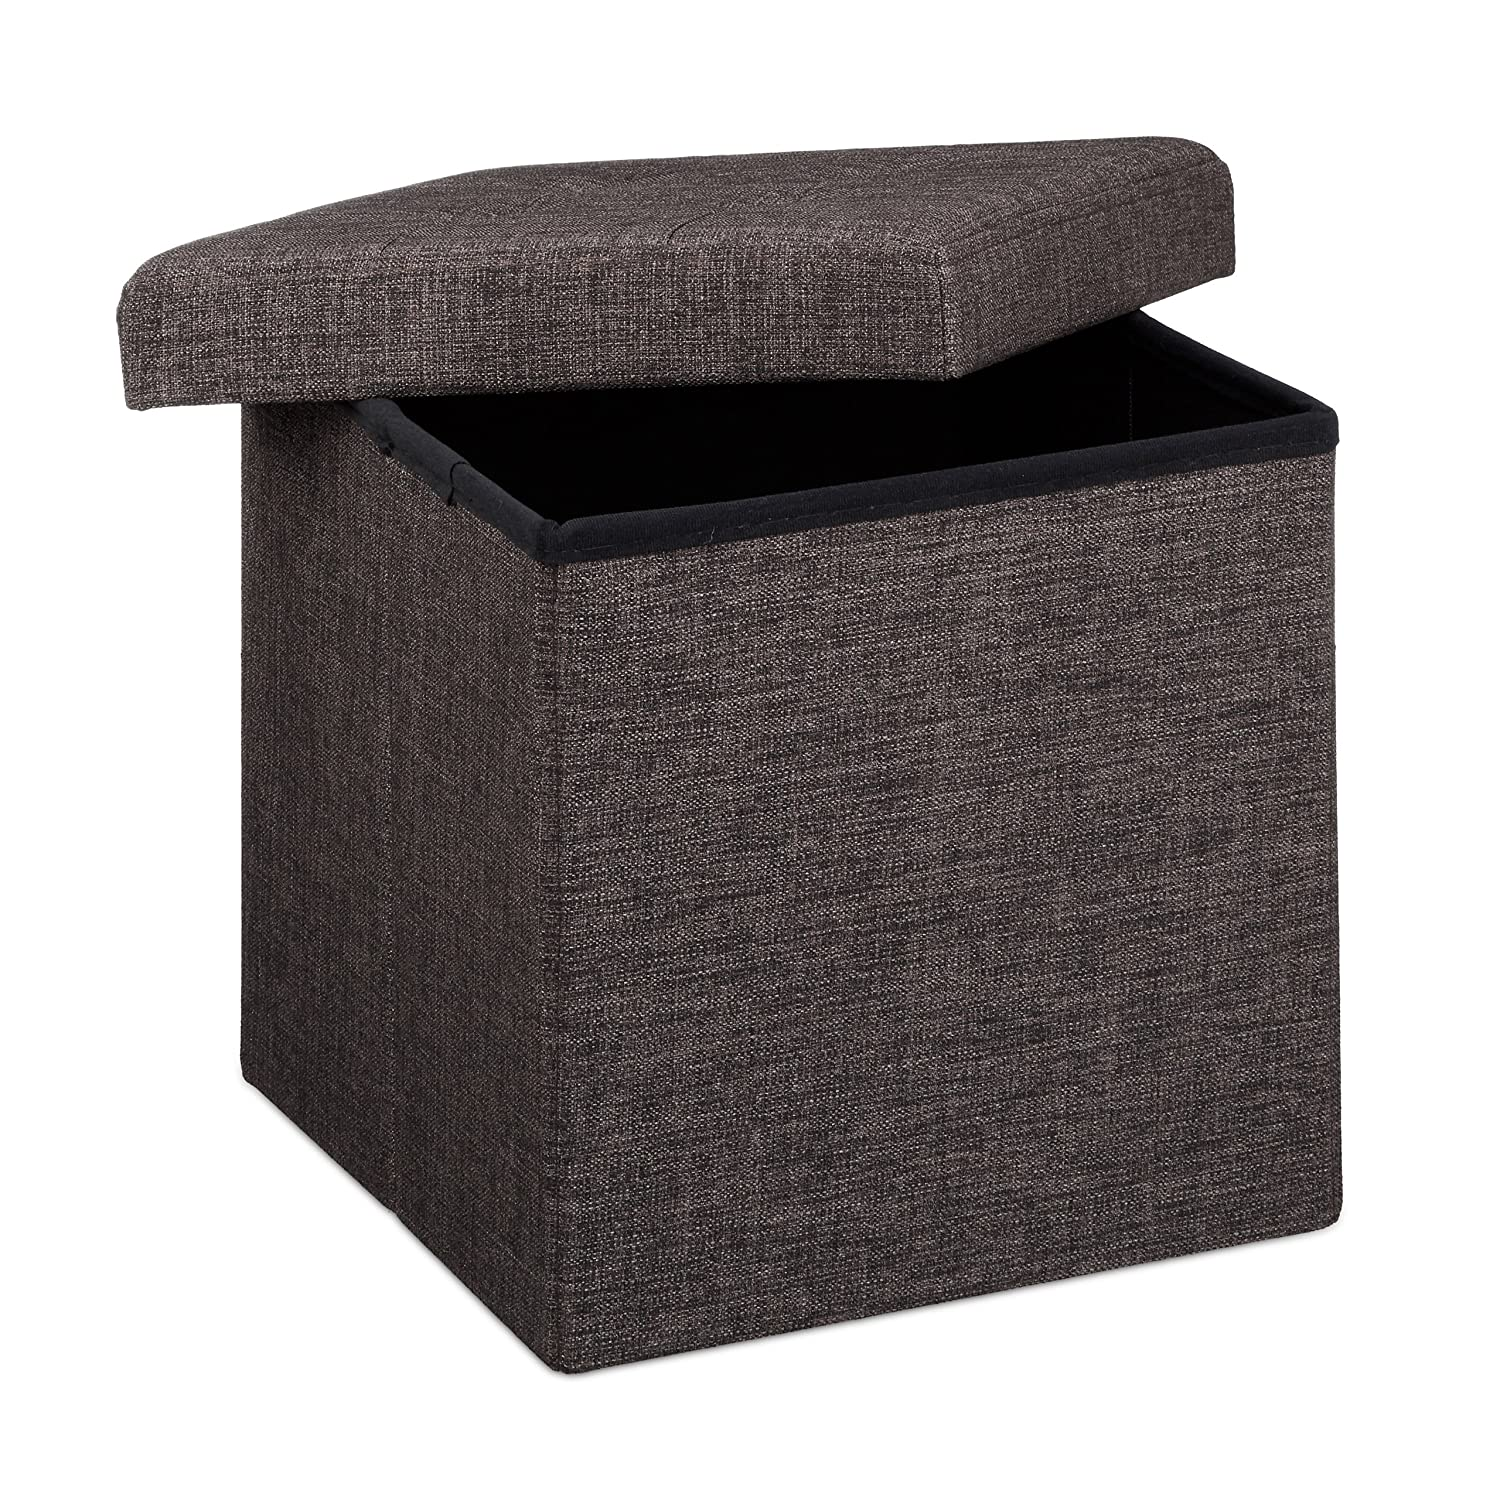 relaxdays ottoman foldable footstool box storage cube with removable lid ebay. Black Bedroom Furniture Sets. Home Design Ideas